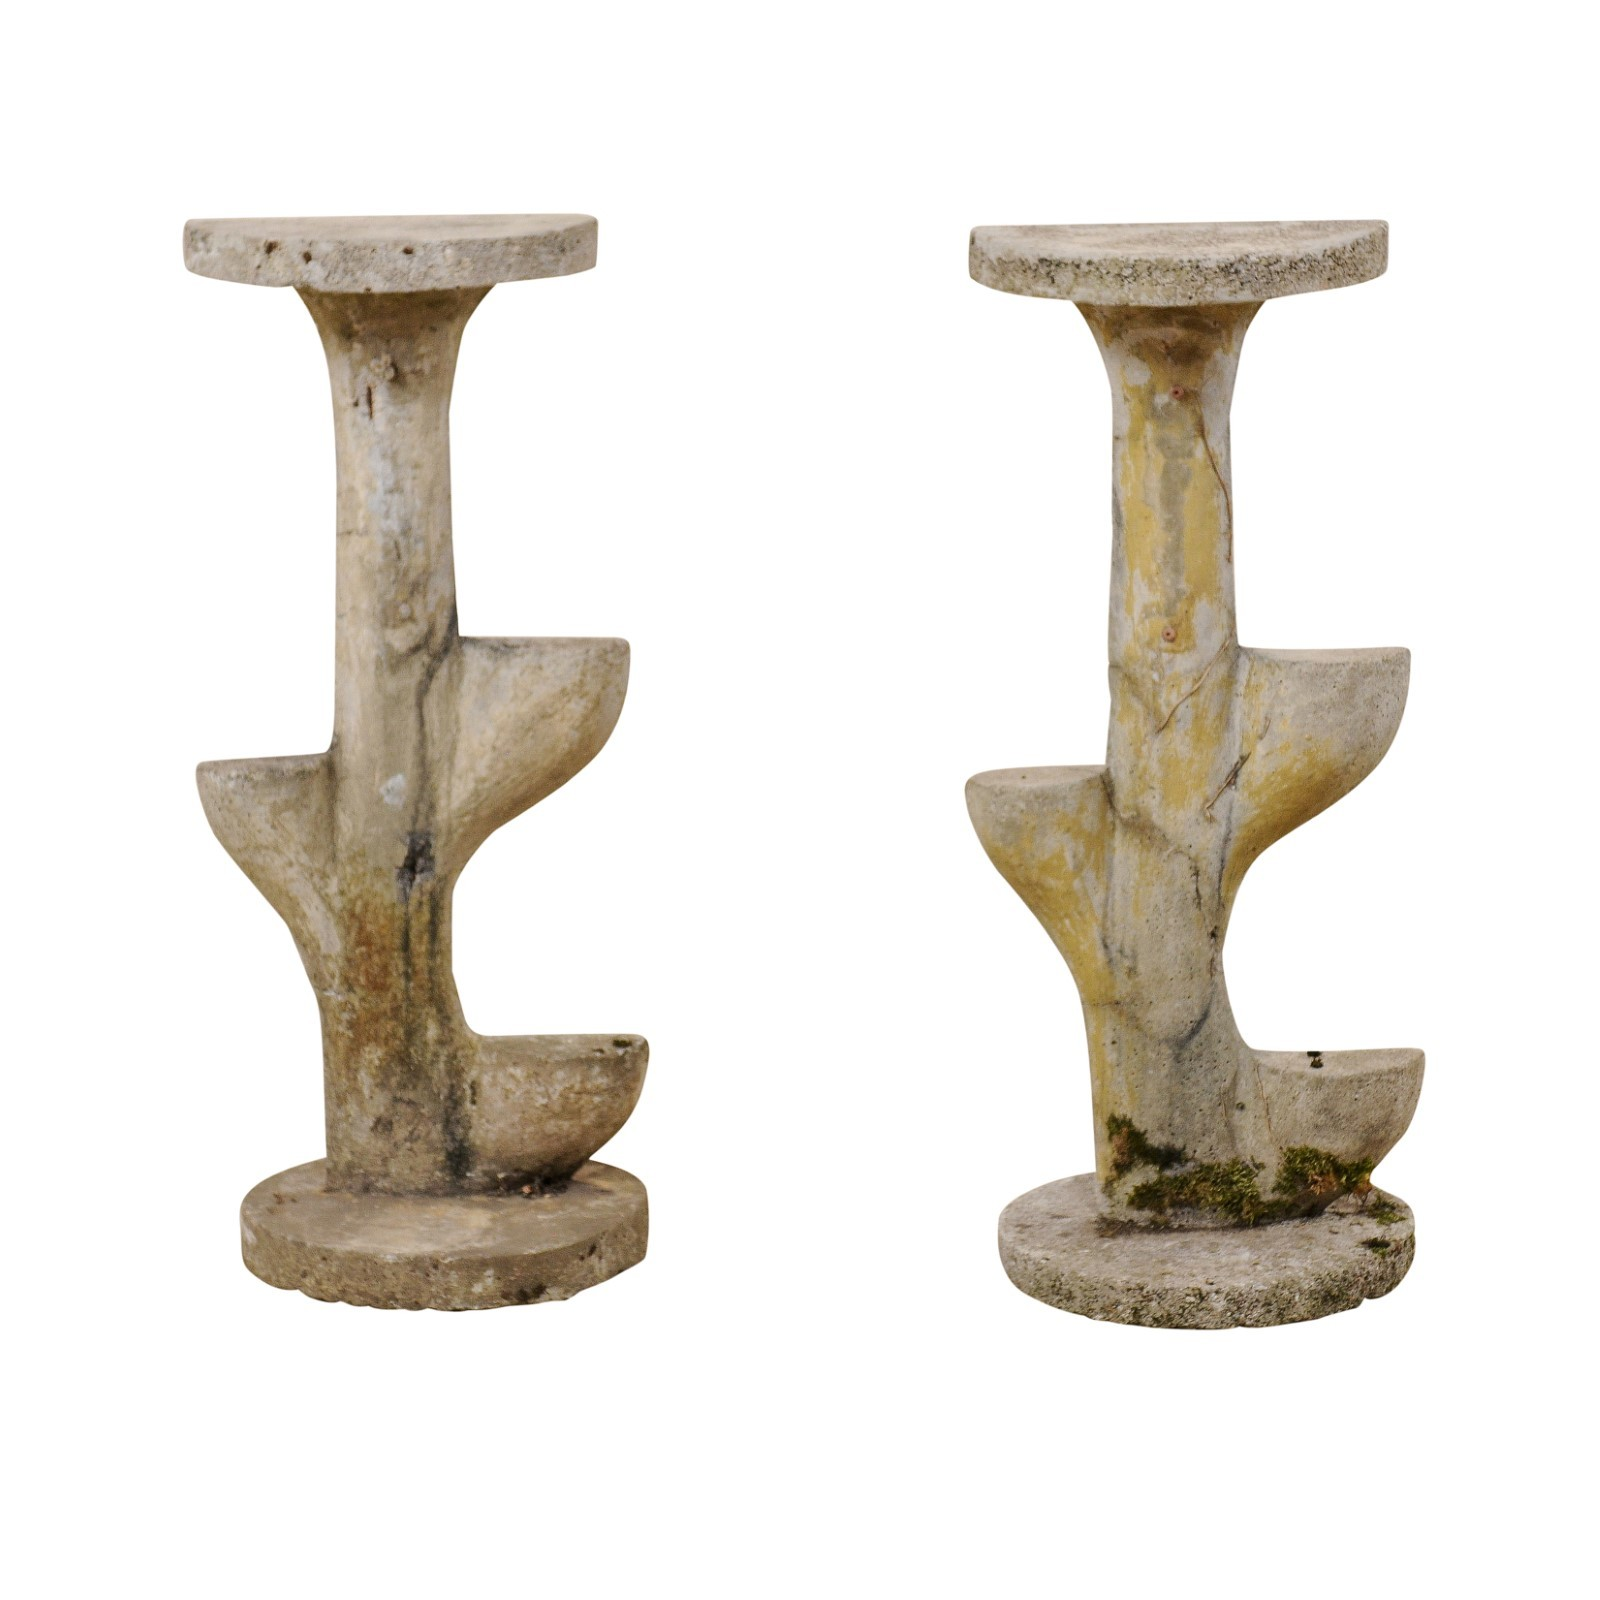 Pair French Garden Sculptural Accents